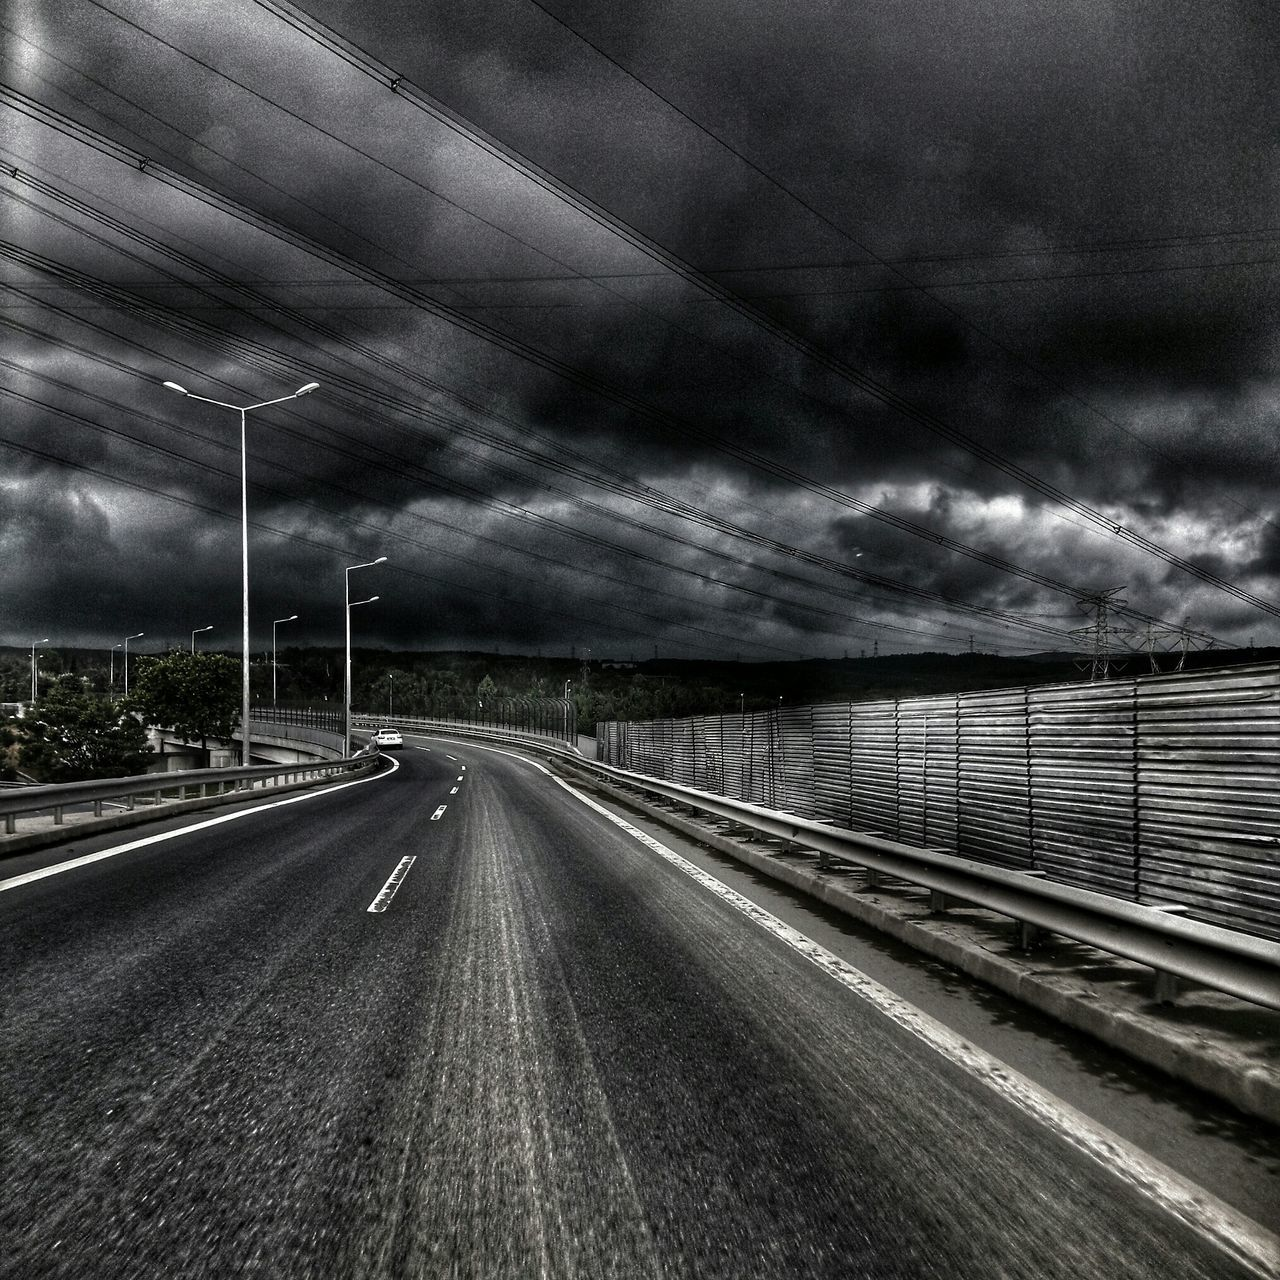 transportation, road, cloud - sky, the way forward, no people, sky, outdoors, street light, cable, nature, day, electricity pylon, scenics, storm cloud